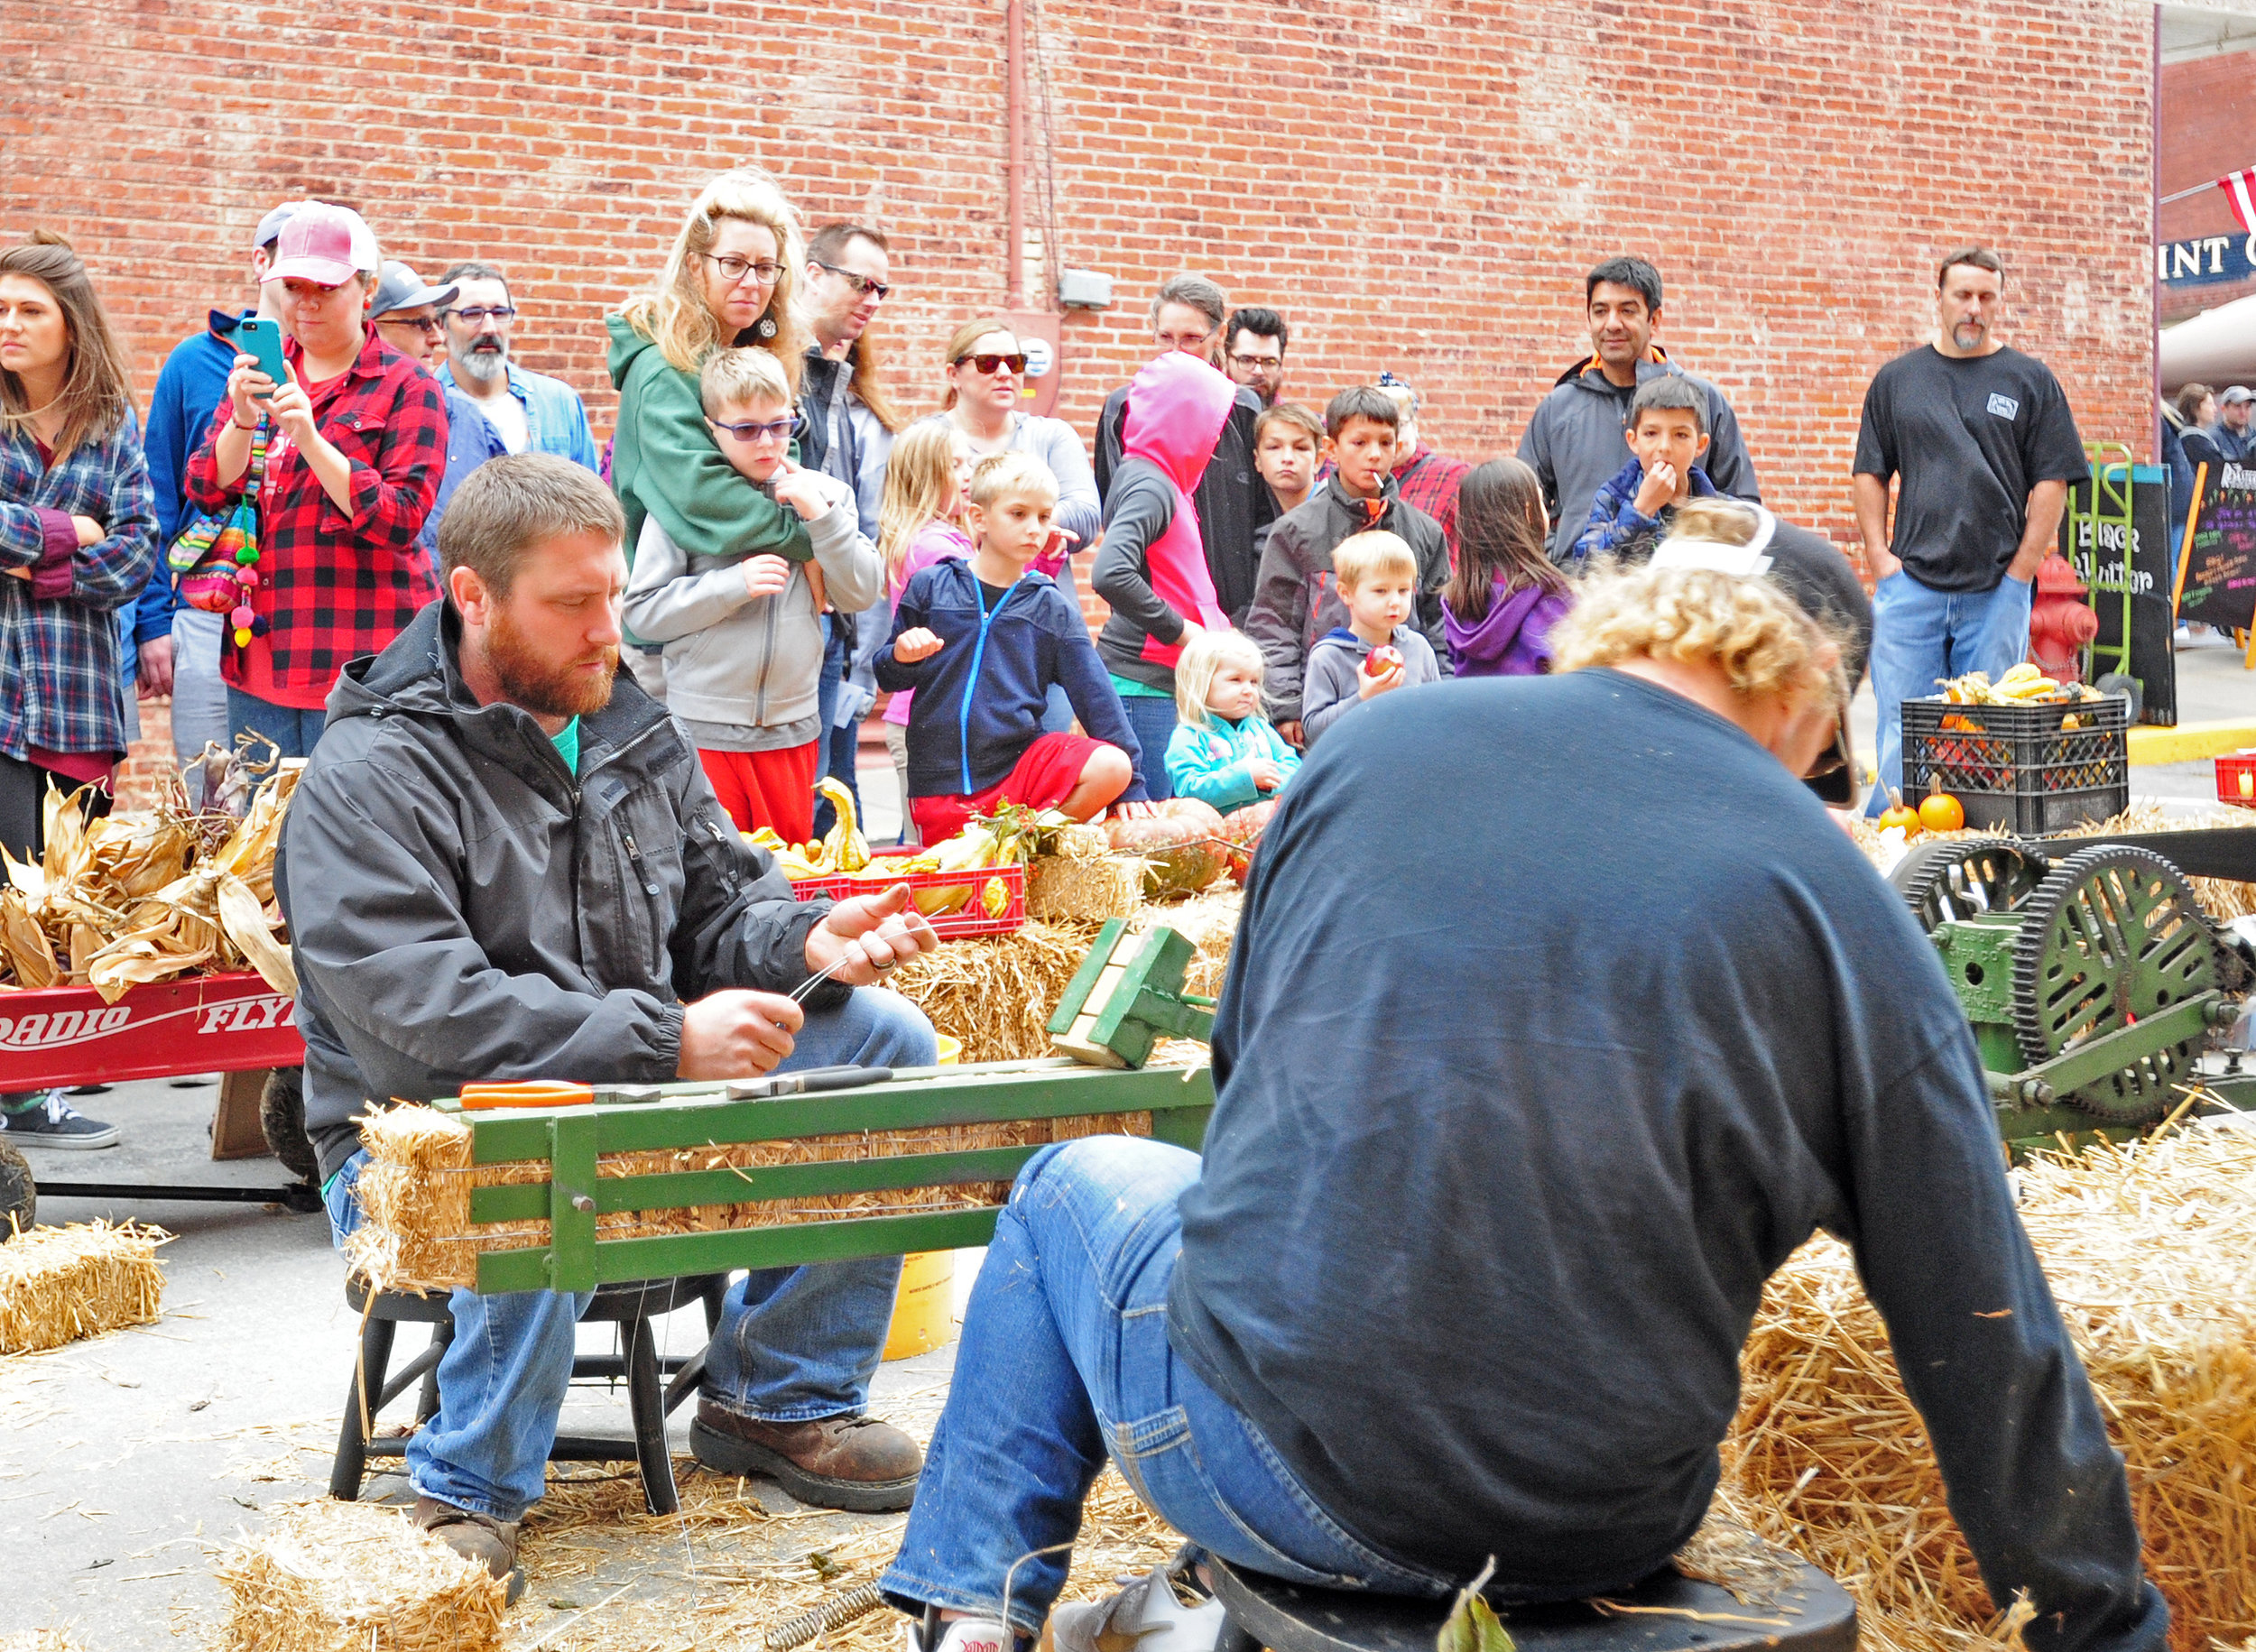 NICK INGRAM/Citizen photo Spectators watch as workers put straw into a machine to make miniature bales of hay during Applefest on Saturday, Oct. 7 in Weston, Mo.